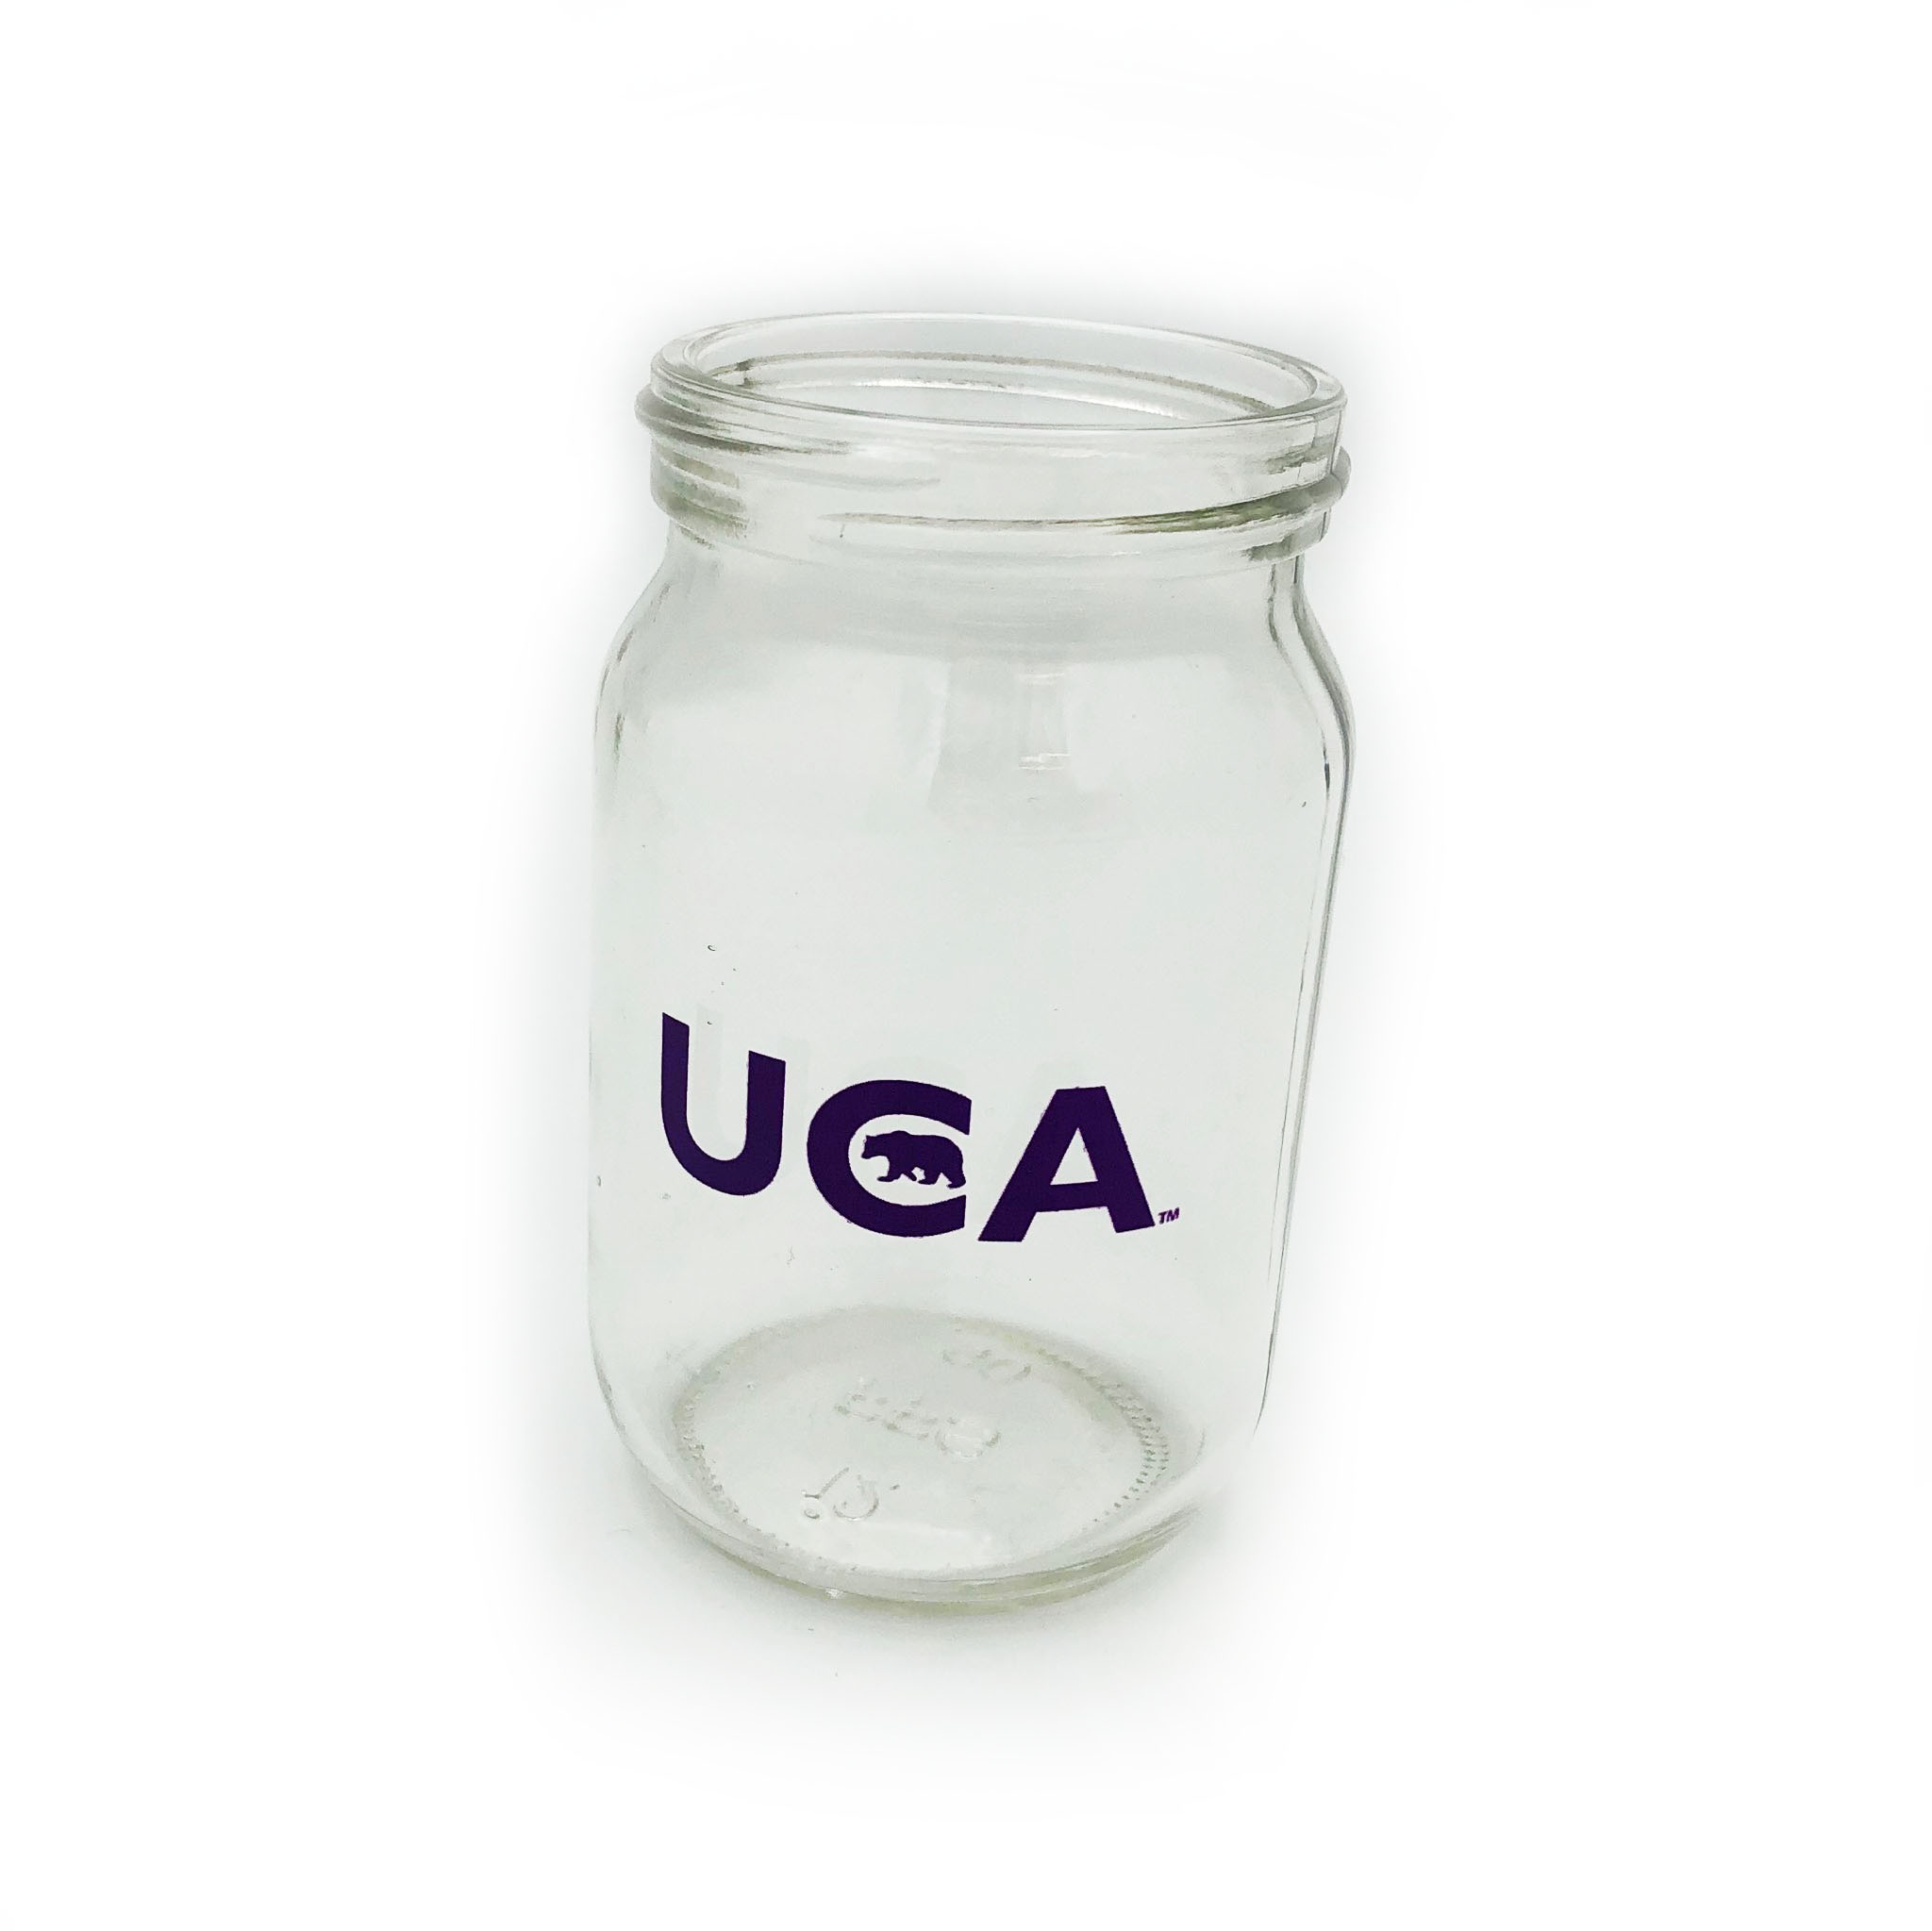 UCA Jar Shot Glass 4oz